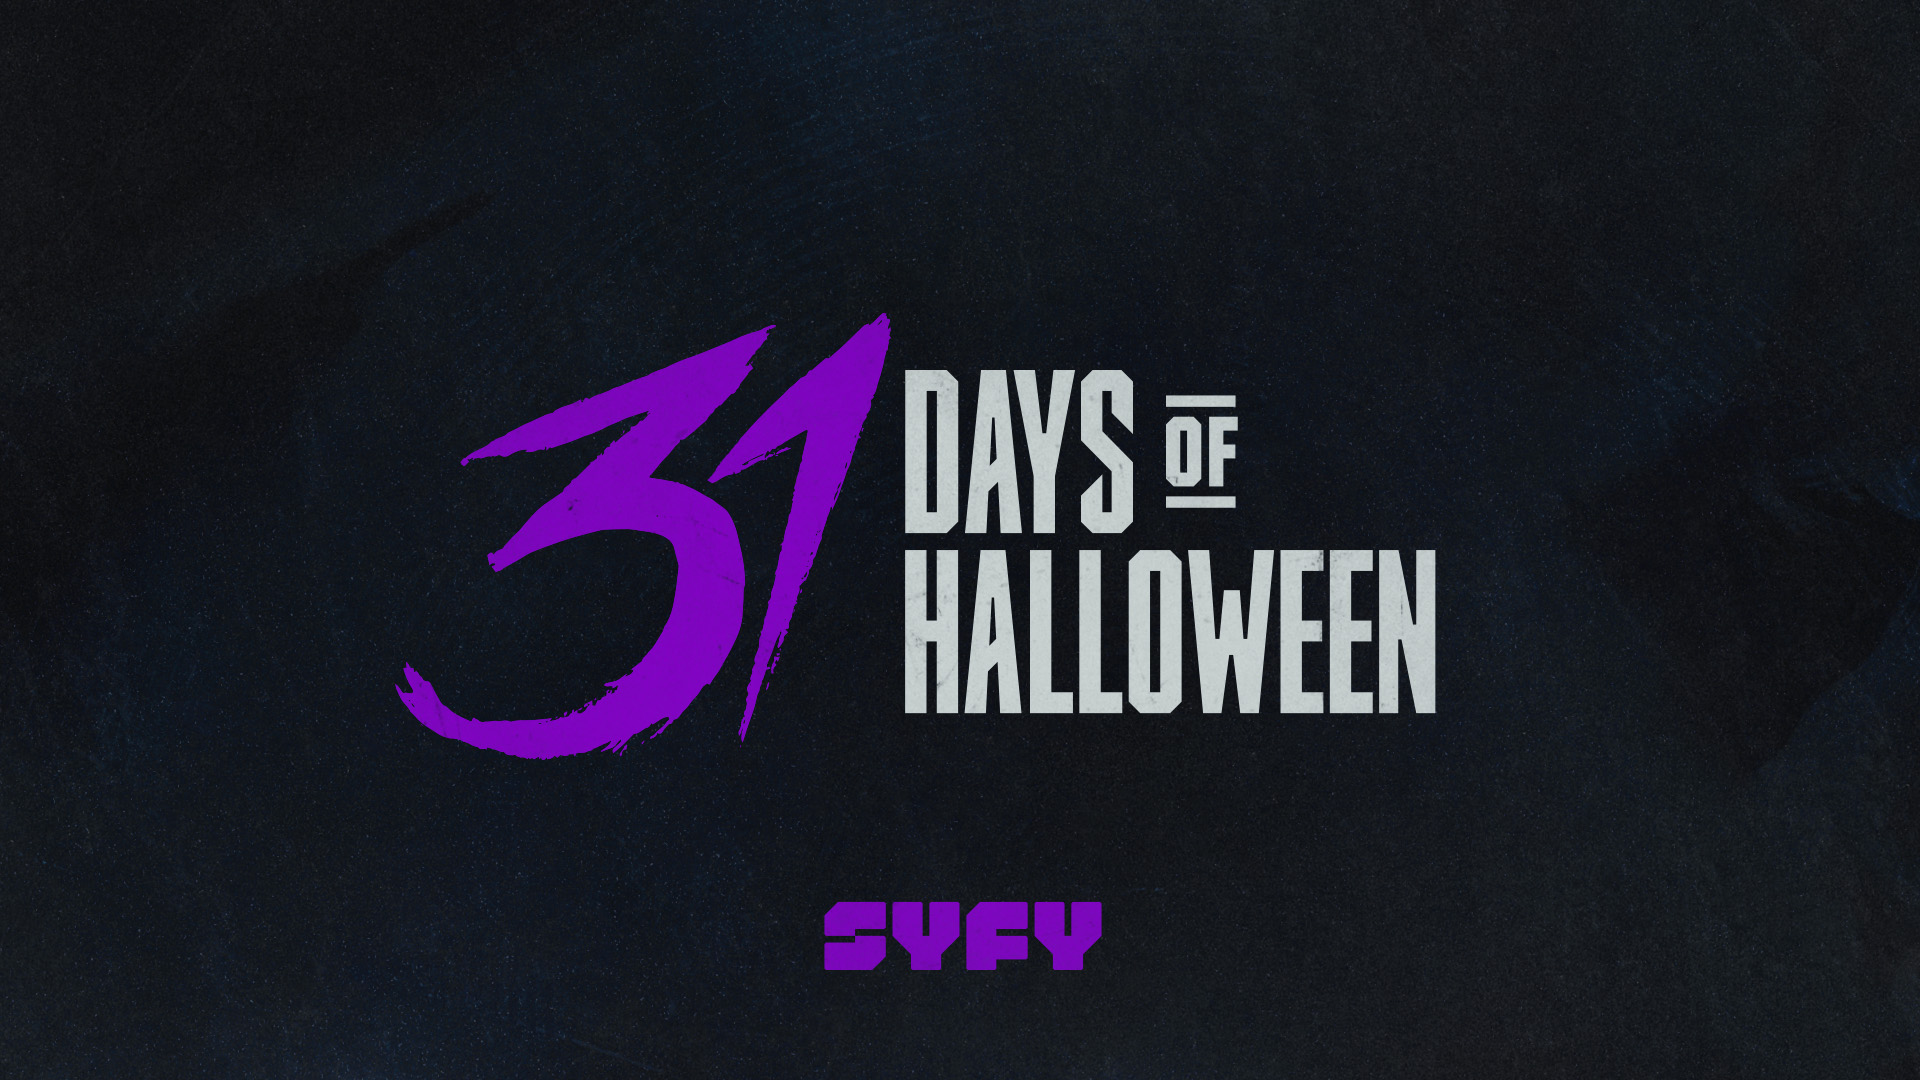 31 Days Of Halloween Line Up 2020 SYFY's Halloween Lineup Includes Themed Movie Marathons Throughout